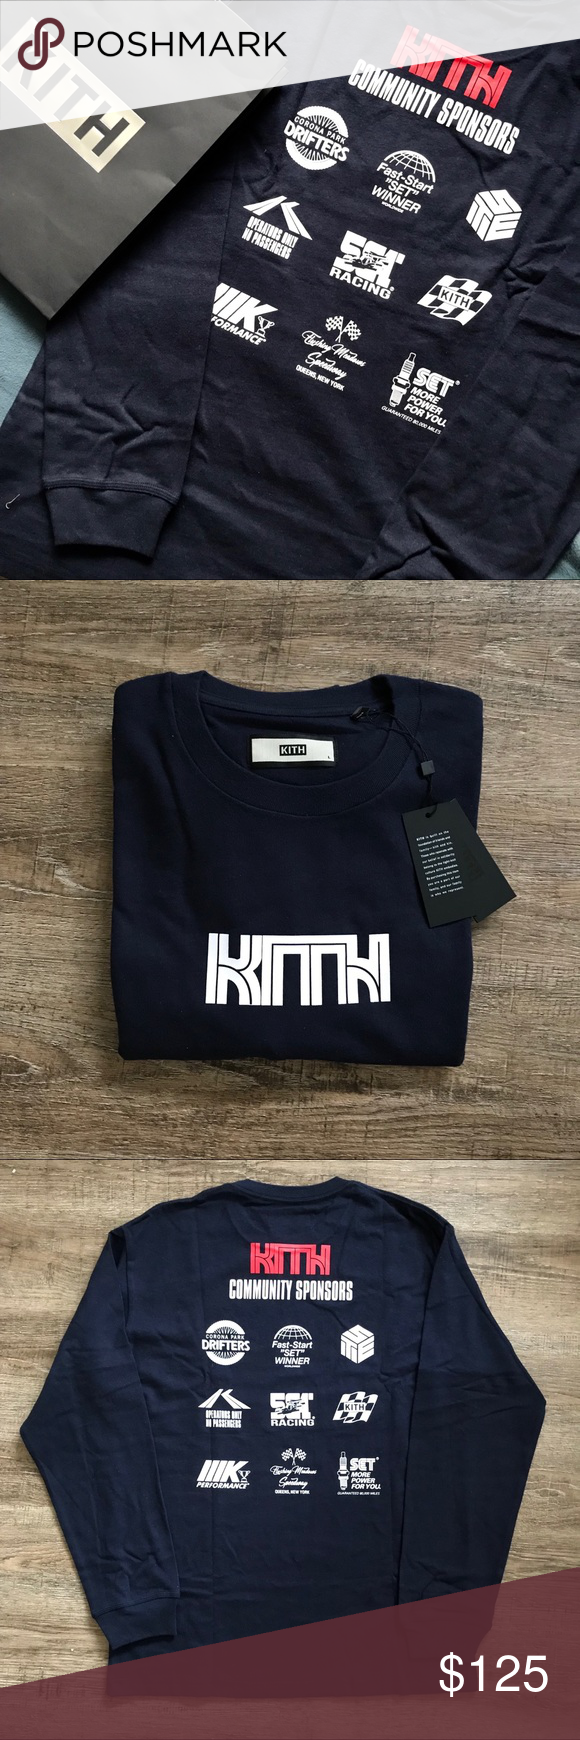 5843341c KITH Box Logo Long Sleeve Navy Shirt LARGE Style: 804647 KITH COMMUNITY  SPONSORS L/S TEE - NAVY L kith Shirts Tees - Long Sleeve